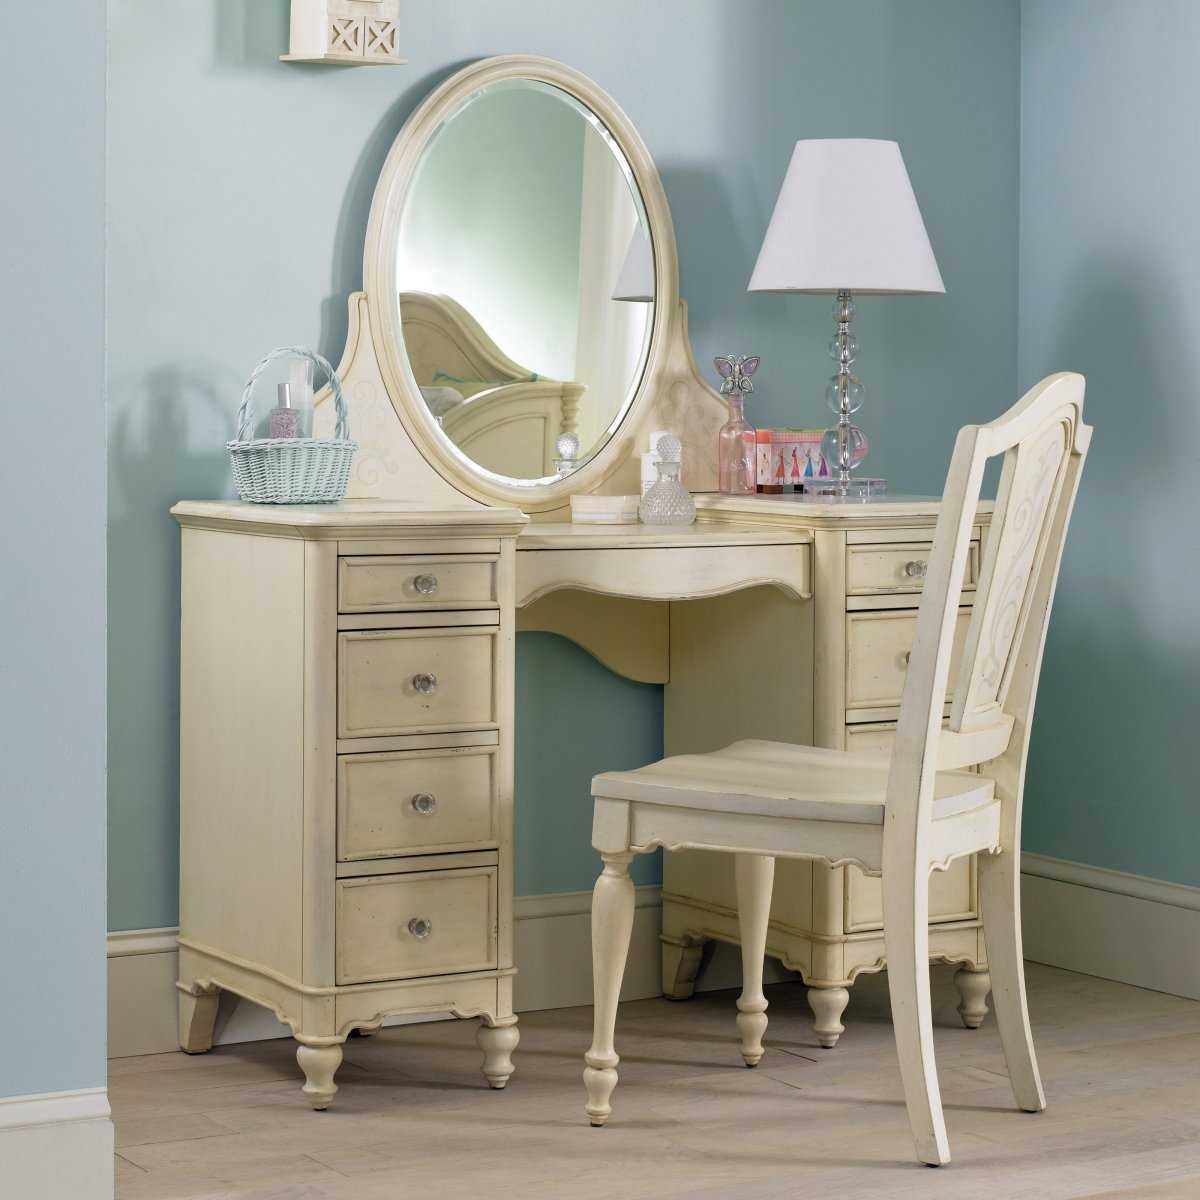 Picture of: Makeup Vanity Mirror Design